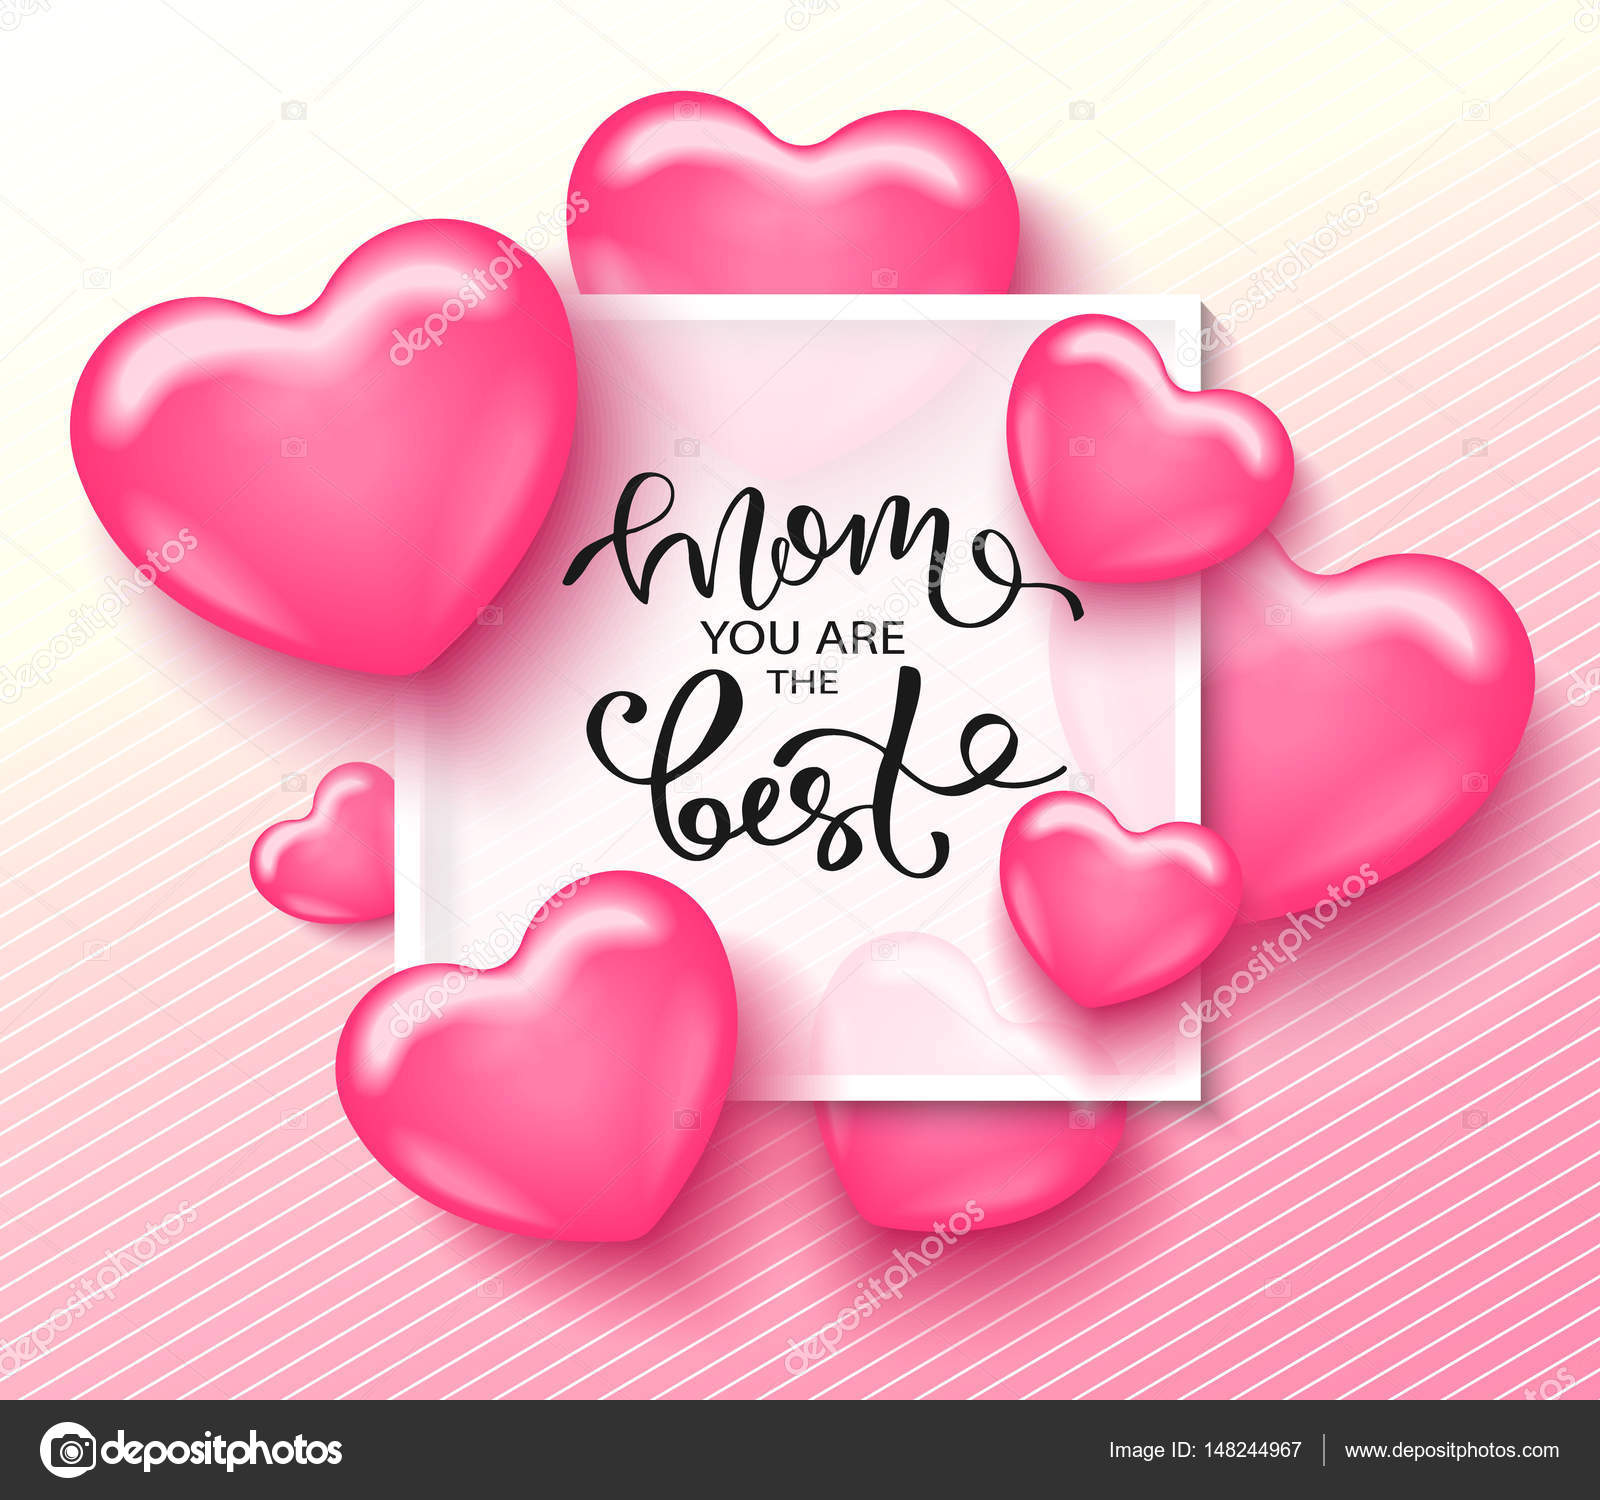 Mom You Are The Best Card Template With Cute Pink Heart And Lettering It May Be Used For Background Poster Advertising Sale Postcard E